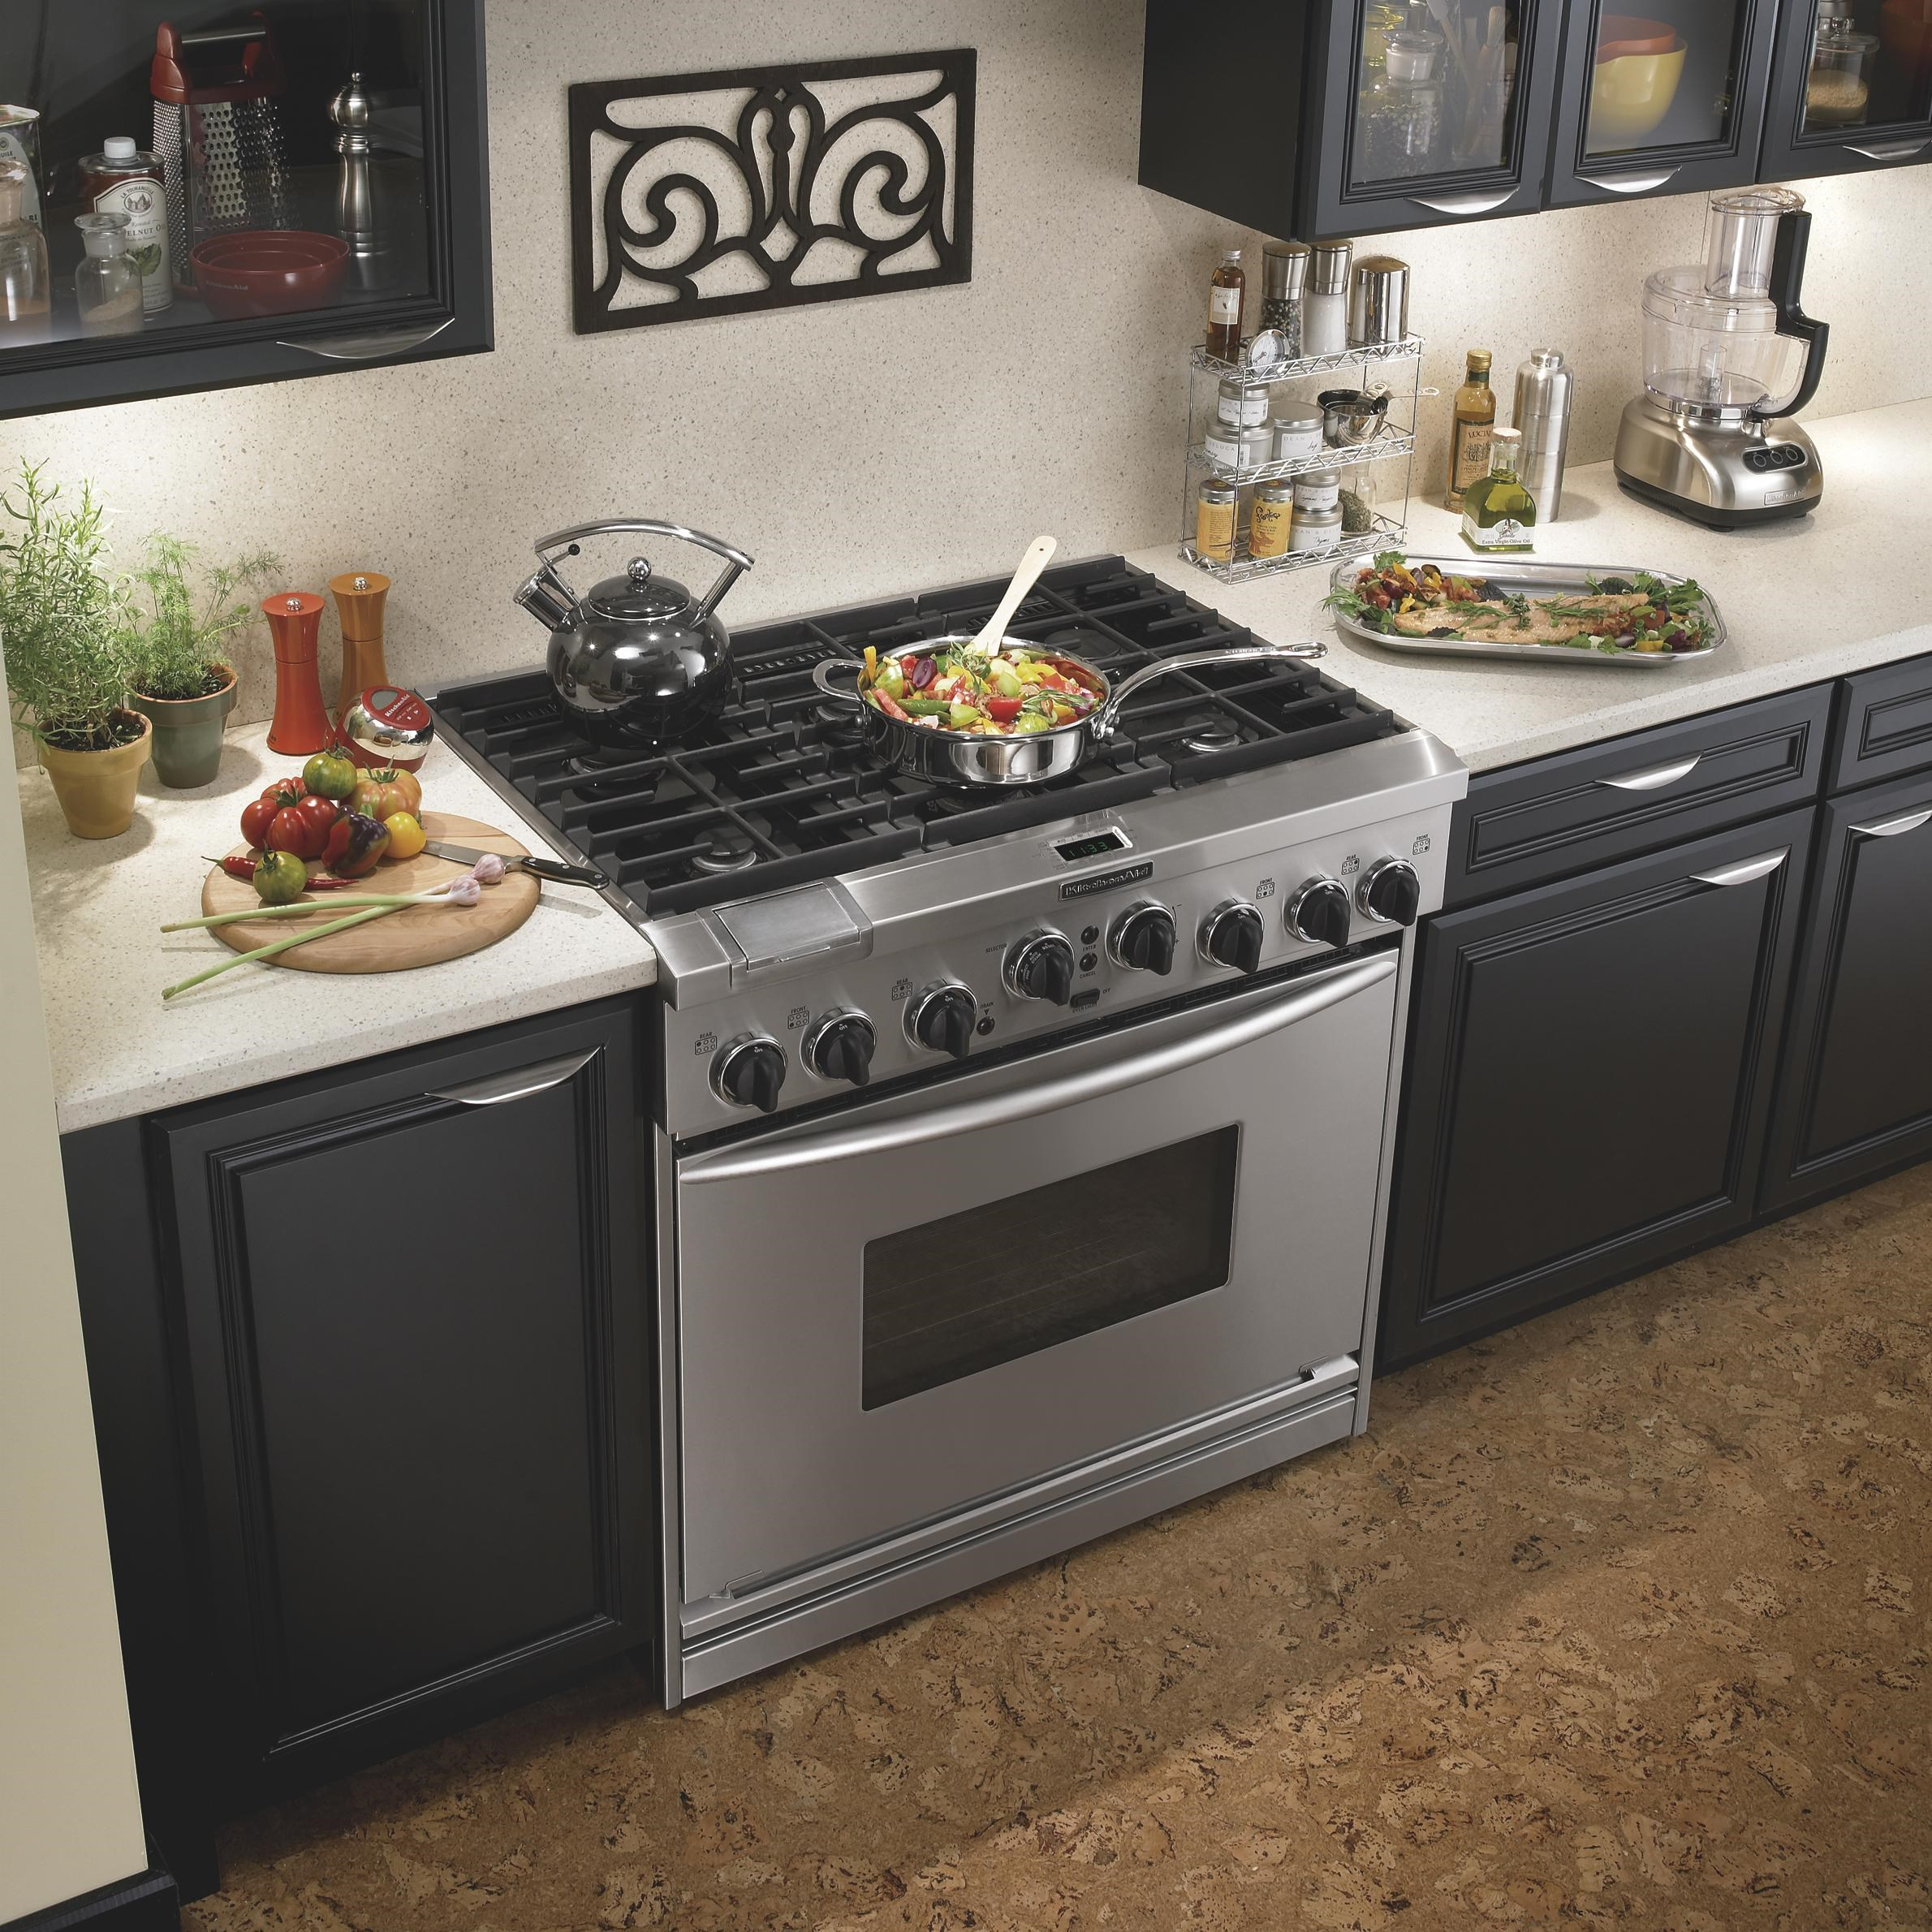 kitchen aid stove contemporary rugs kitchenaid 30 freestanding dual fuel range with convection oven ranges30